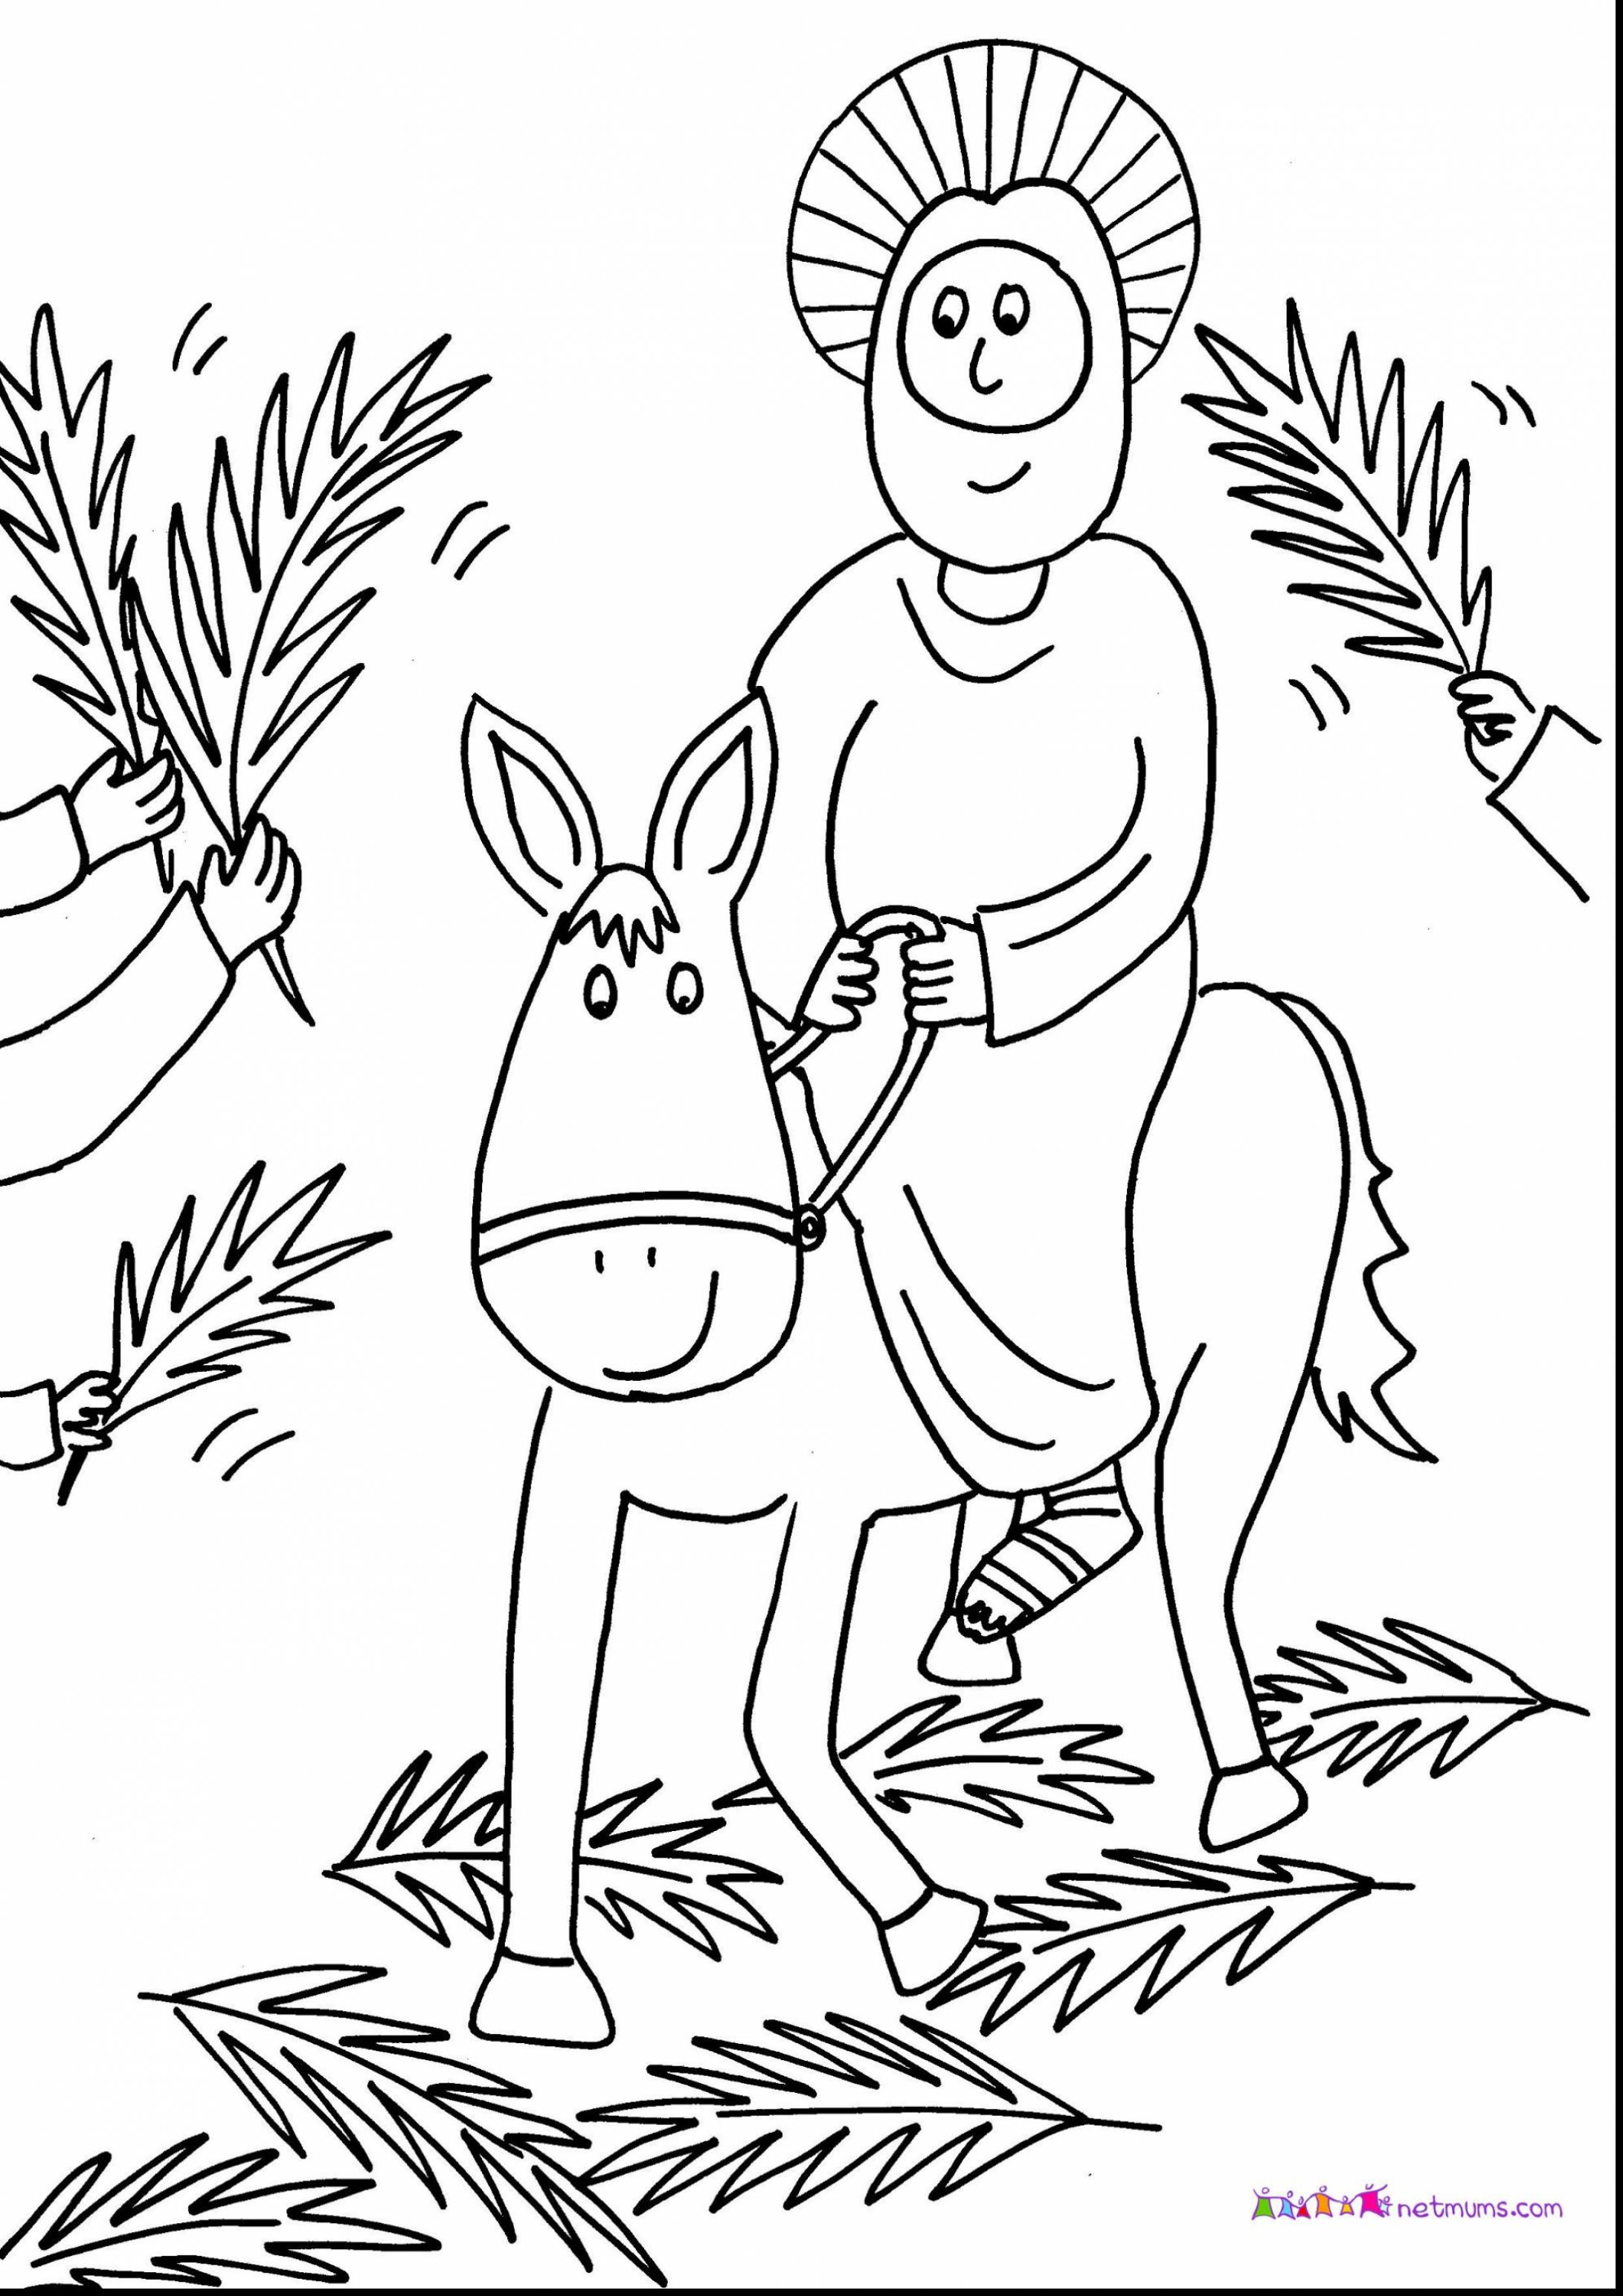 Palm Sunday coloring pages | Palm Sunday | 棕枝主日 | Bijbel ... | 3086x2182